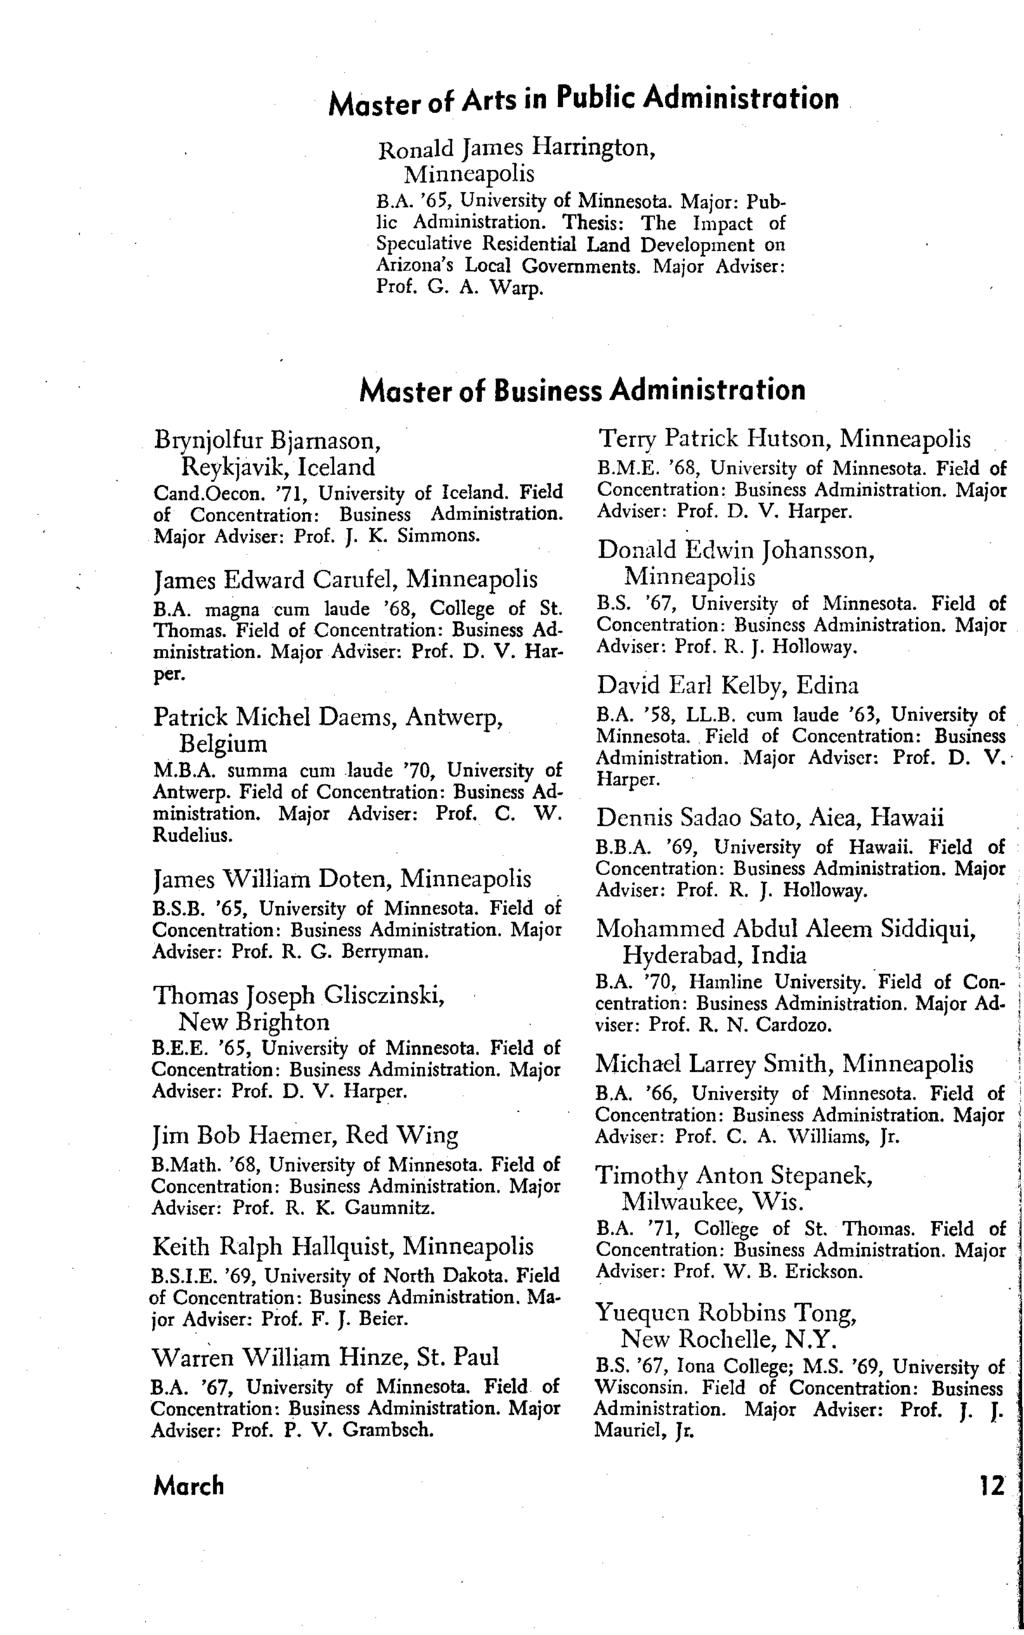 Master of Arts in Public Administration Ronald James Harrington, B.A. '65, University of Minnesota. Major: Public Administration.